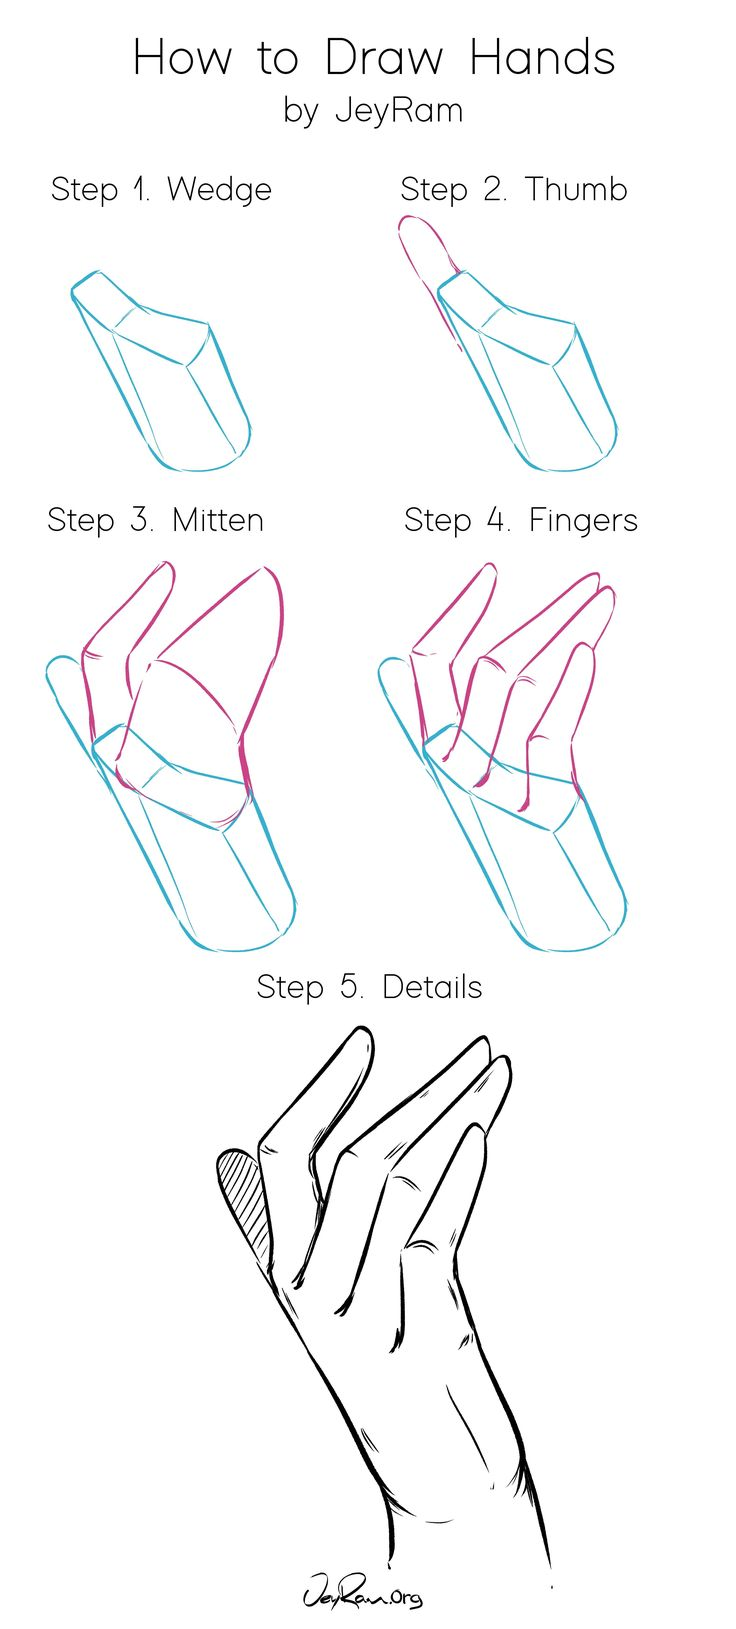 How to draw hands step by step tutorial for beginners